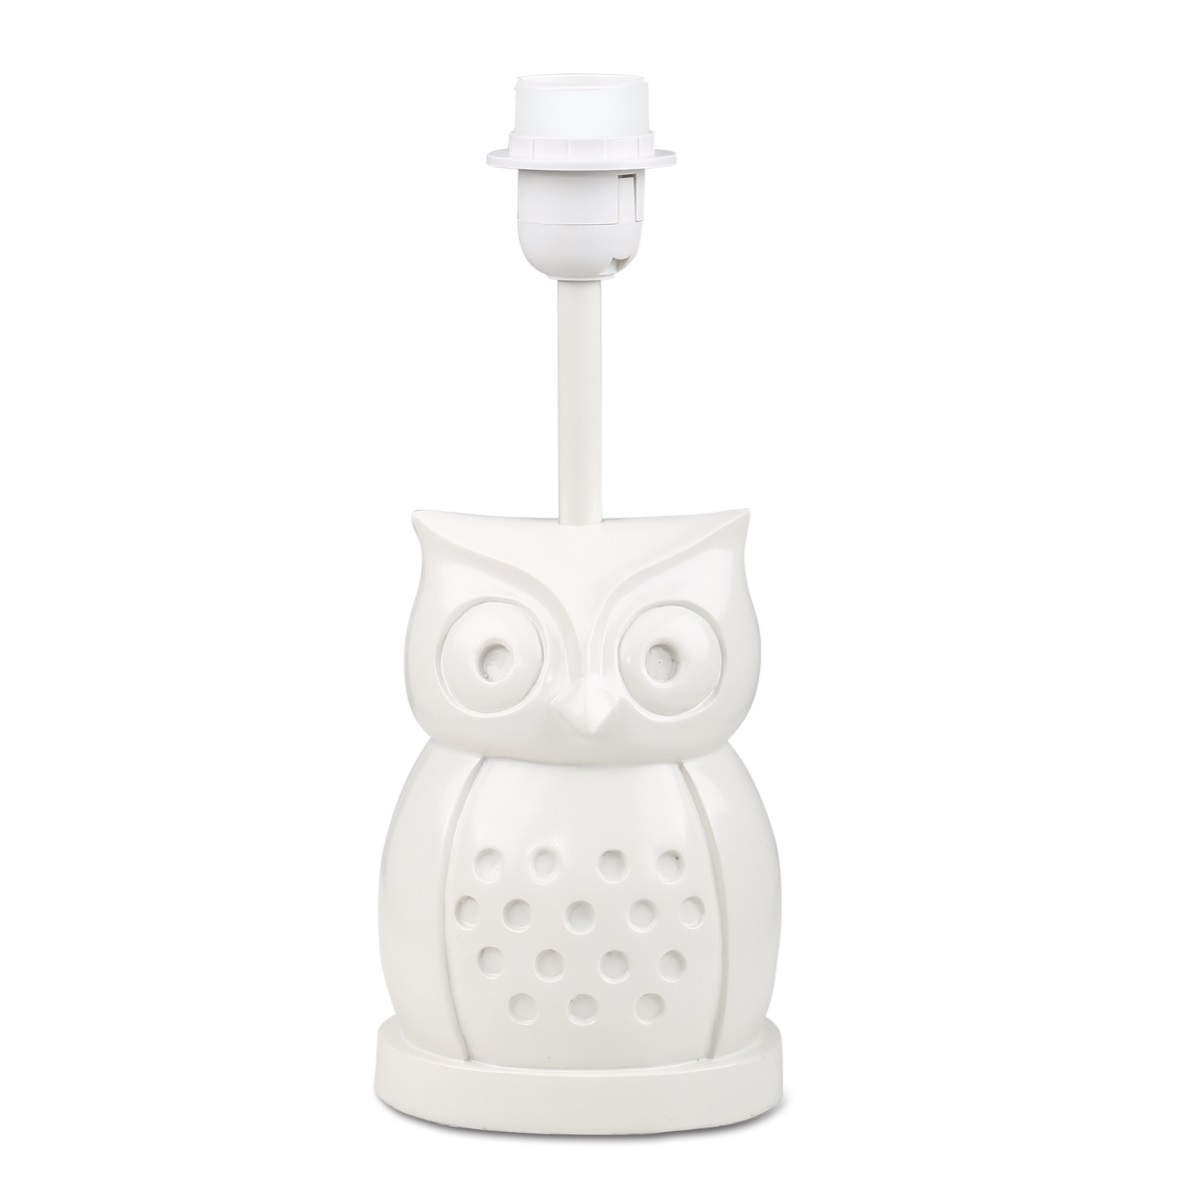 our owl lamp base is a novel way to add both light and whimsy to your little oneu0027s room the delightful owl shape provides a solid and stable resin base and